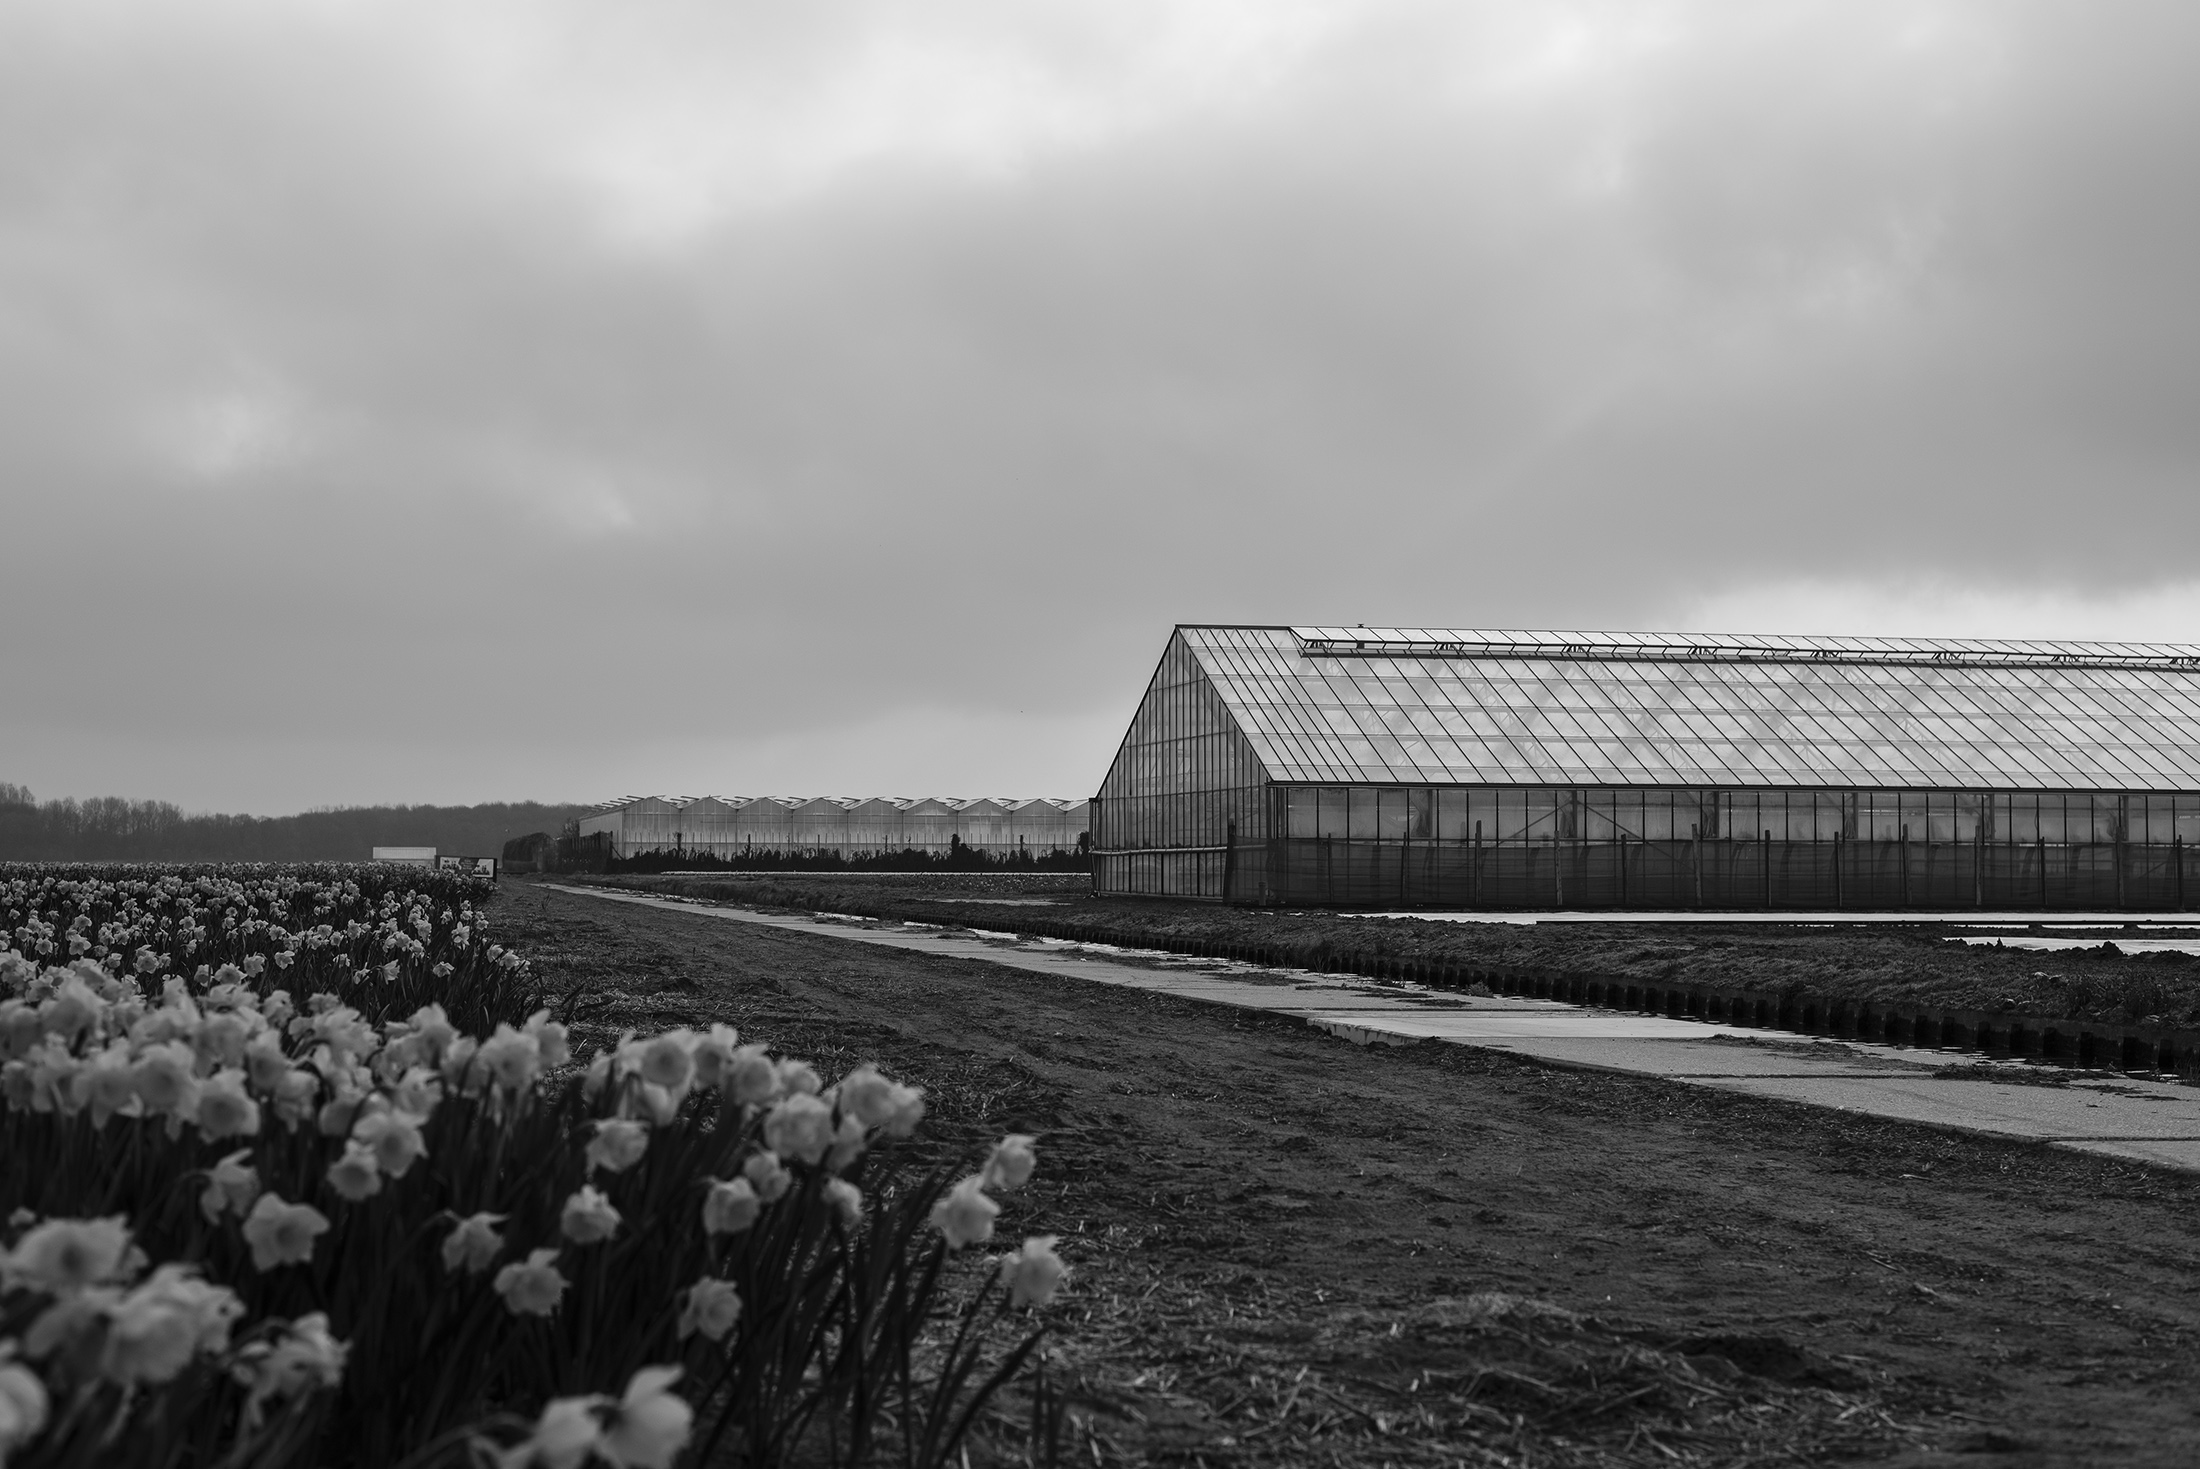 flower fields black and white photograph Netherlands